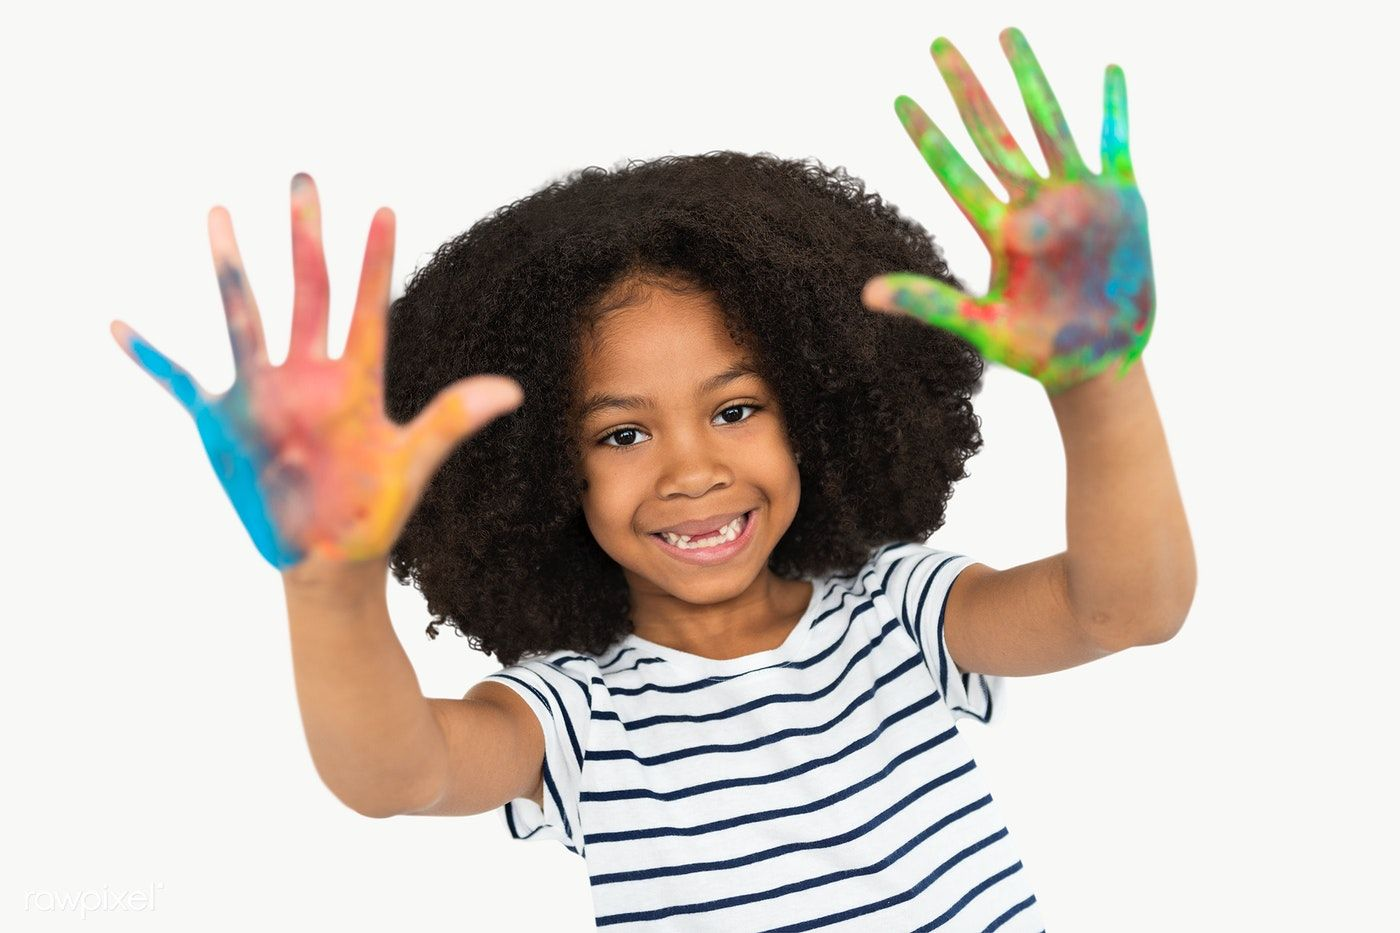 Download Premium Png Of Happy Black Girl With Palms Covered In Paint African African American Girl African Drawings